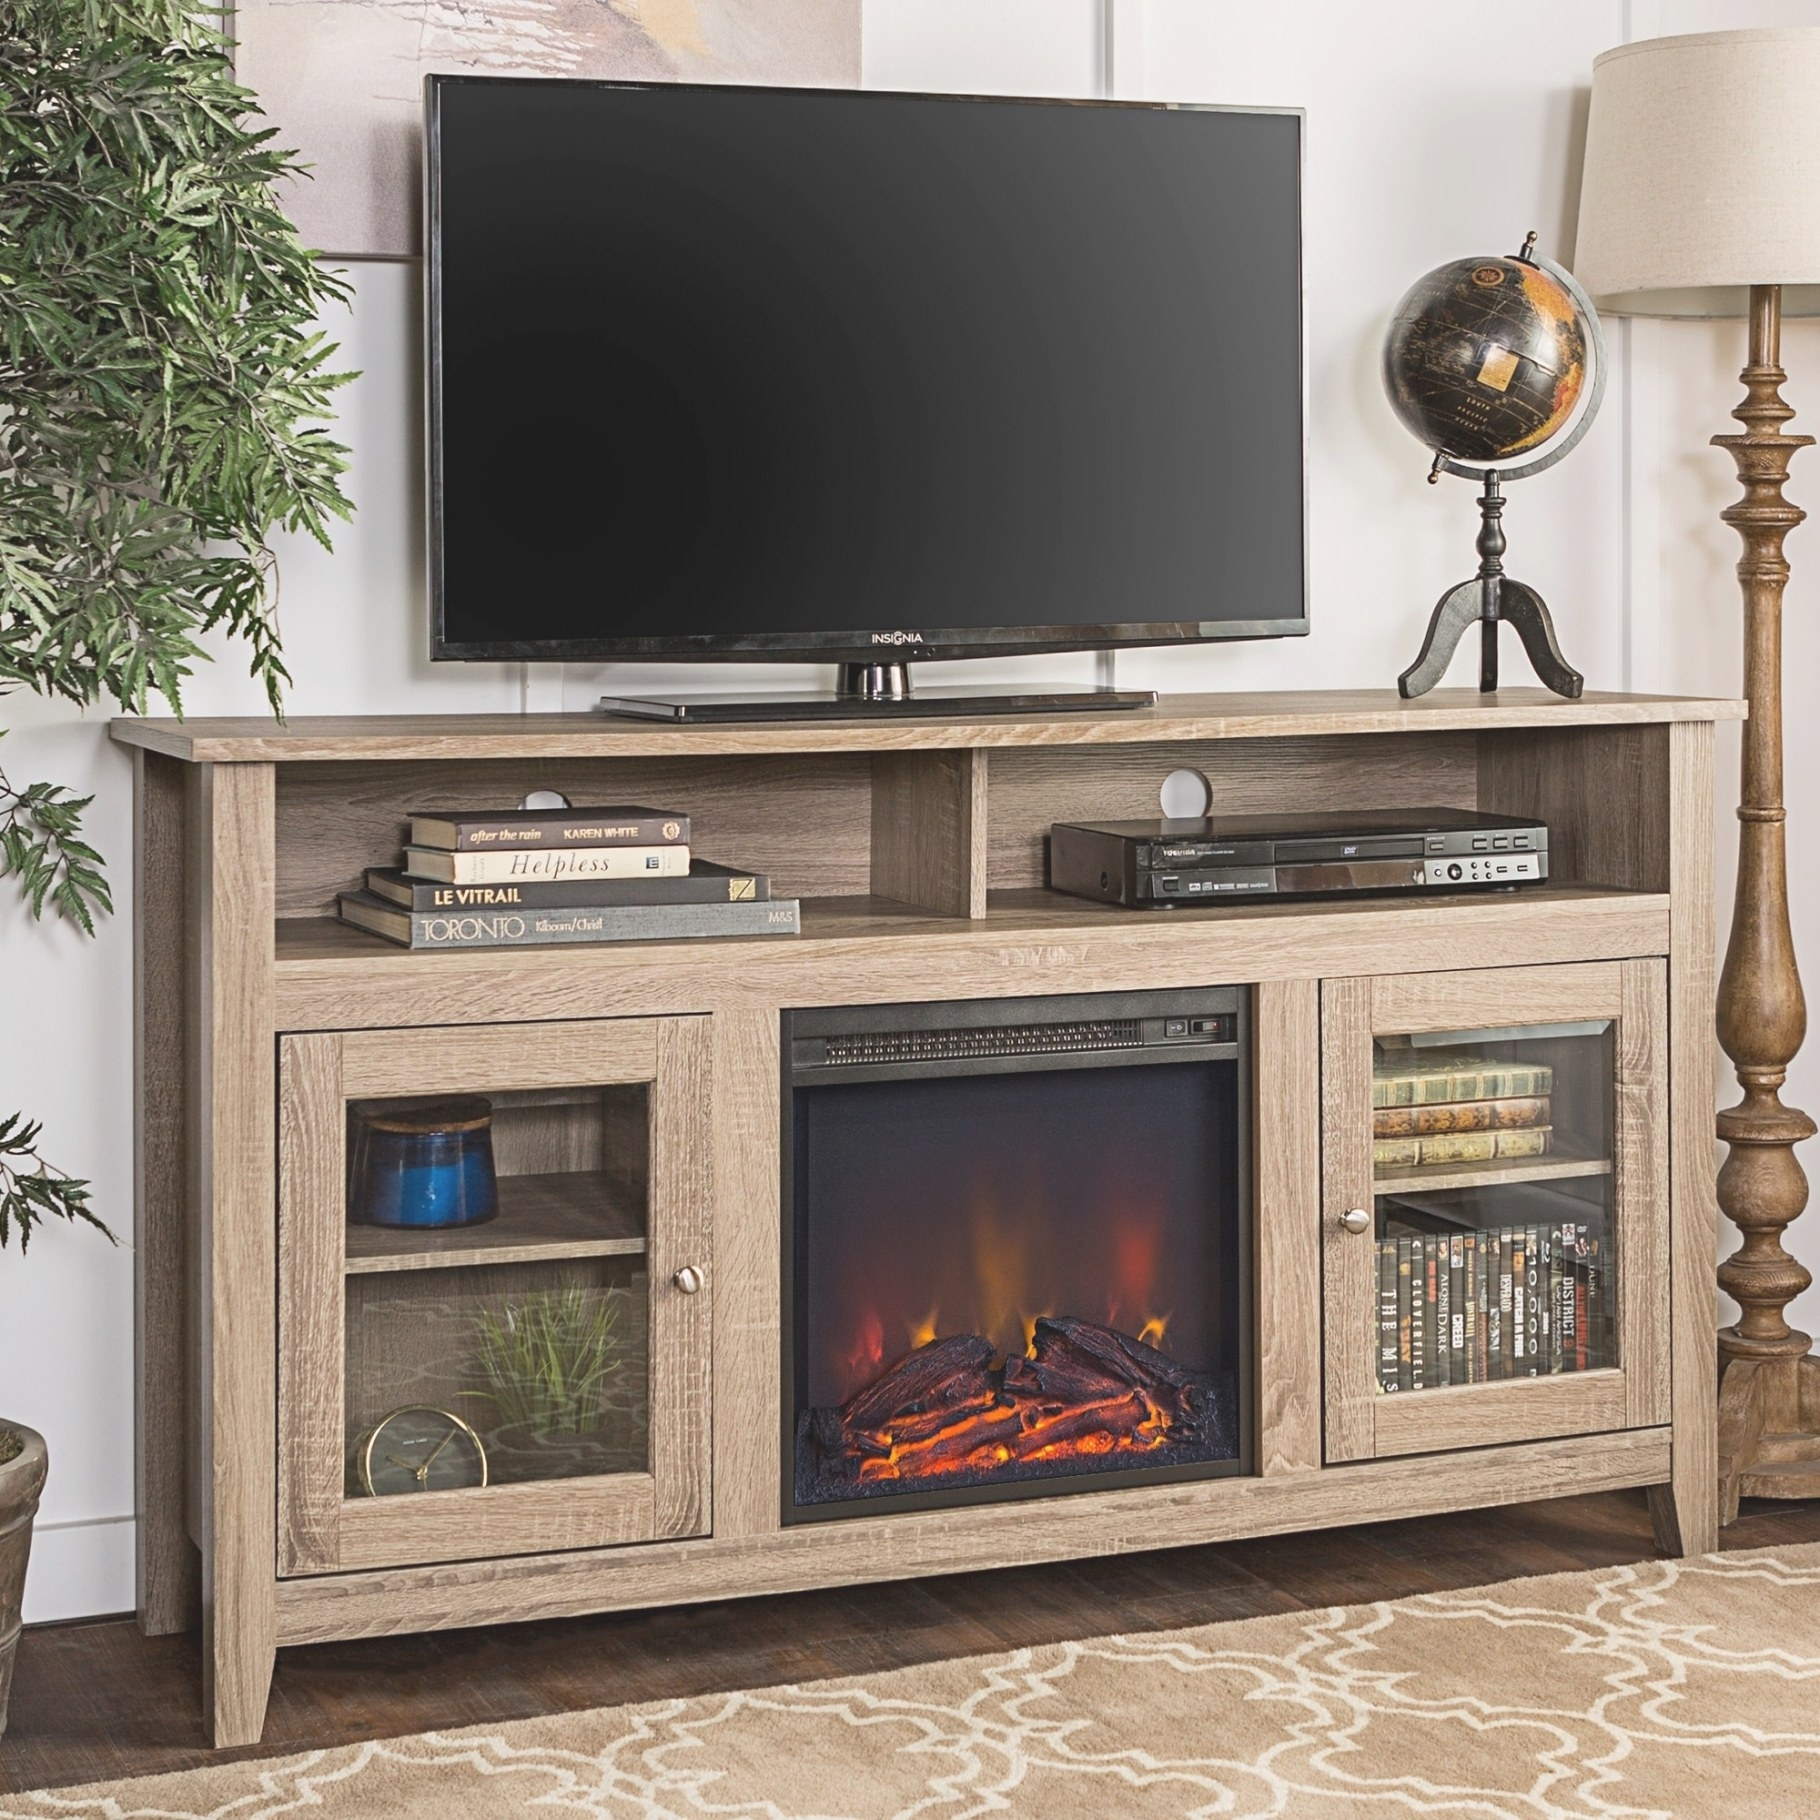 We Furniture 58-Inch Driftwood Highboy Fireplace Tv Stand with 80 Inch Tv Stand